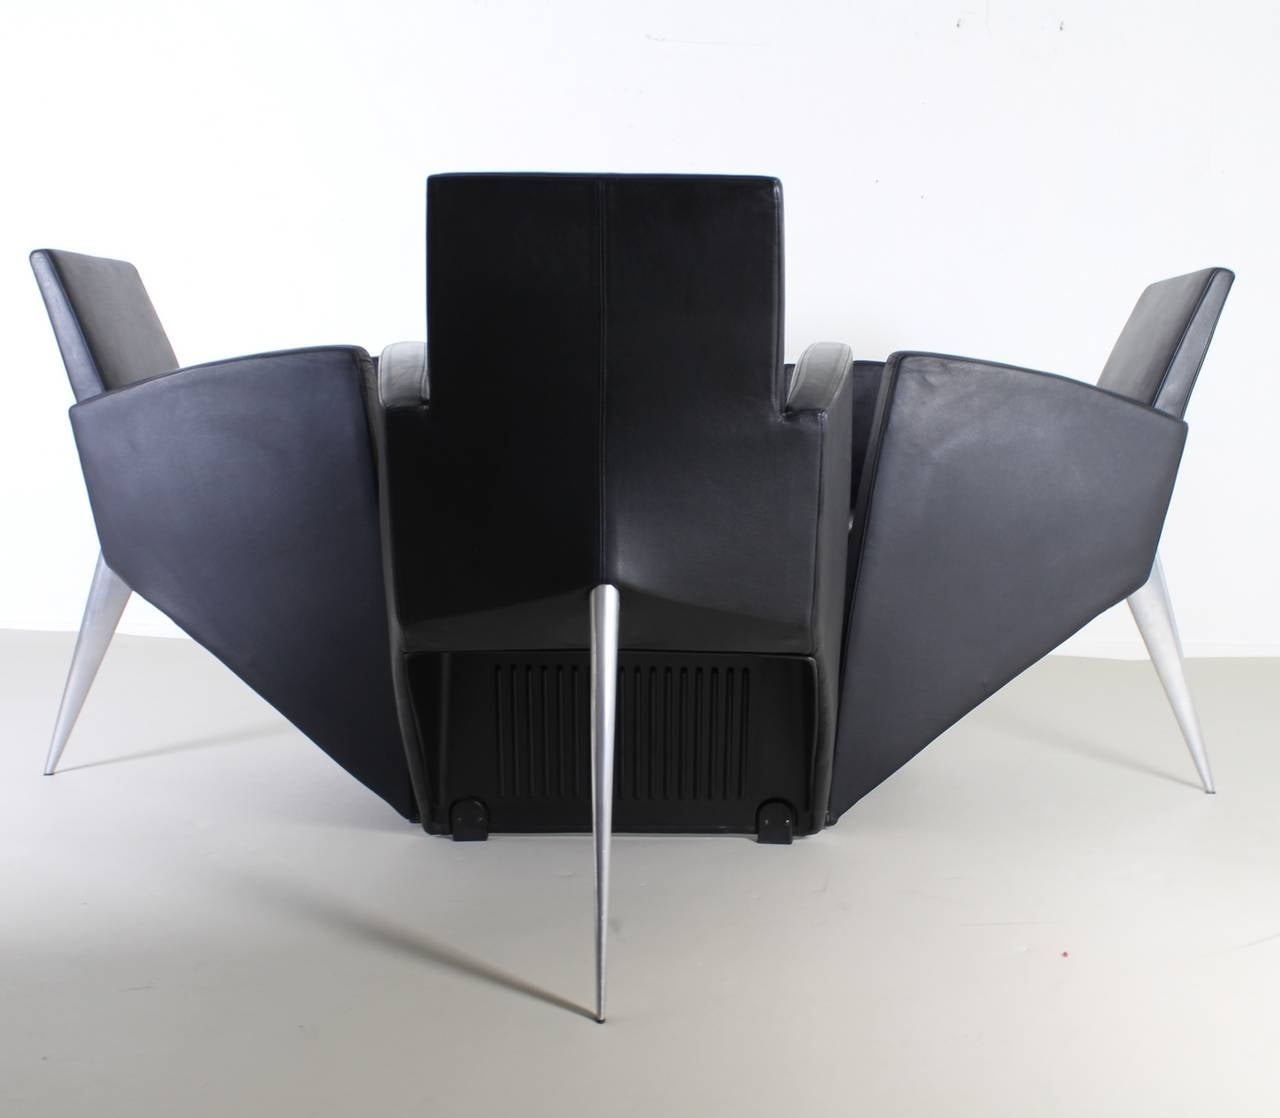 Lounge chairs by philippe starck for aleph france for sale at 1stdibs - Chaises philippe starck ...